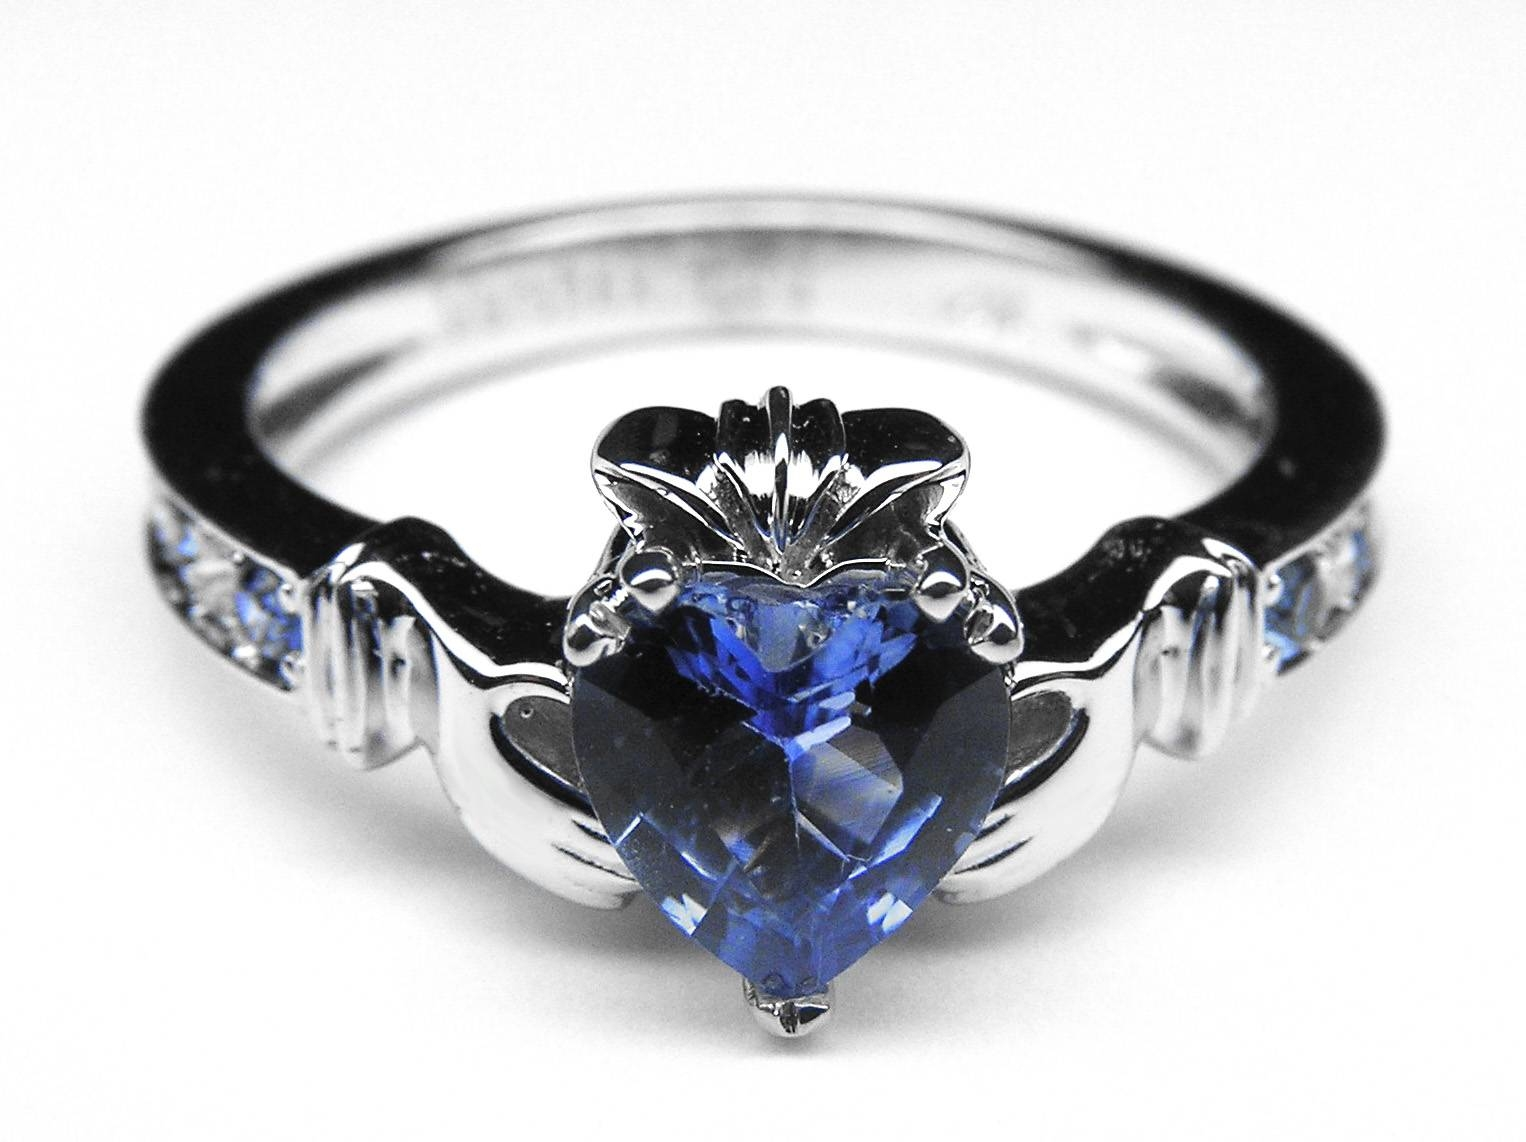 Claddagh – European Engagement Rings From Mdc Diamonds Nyc Intended For Custom Claddagh Engagement Rings (View 4 of 15)